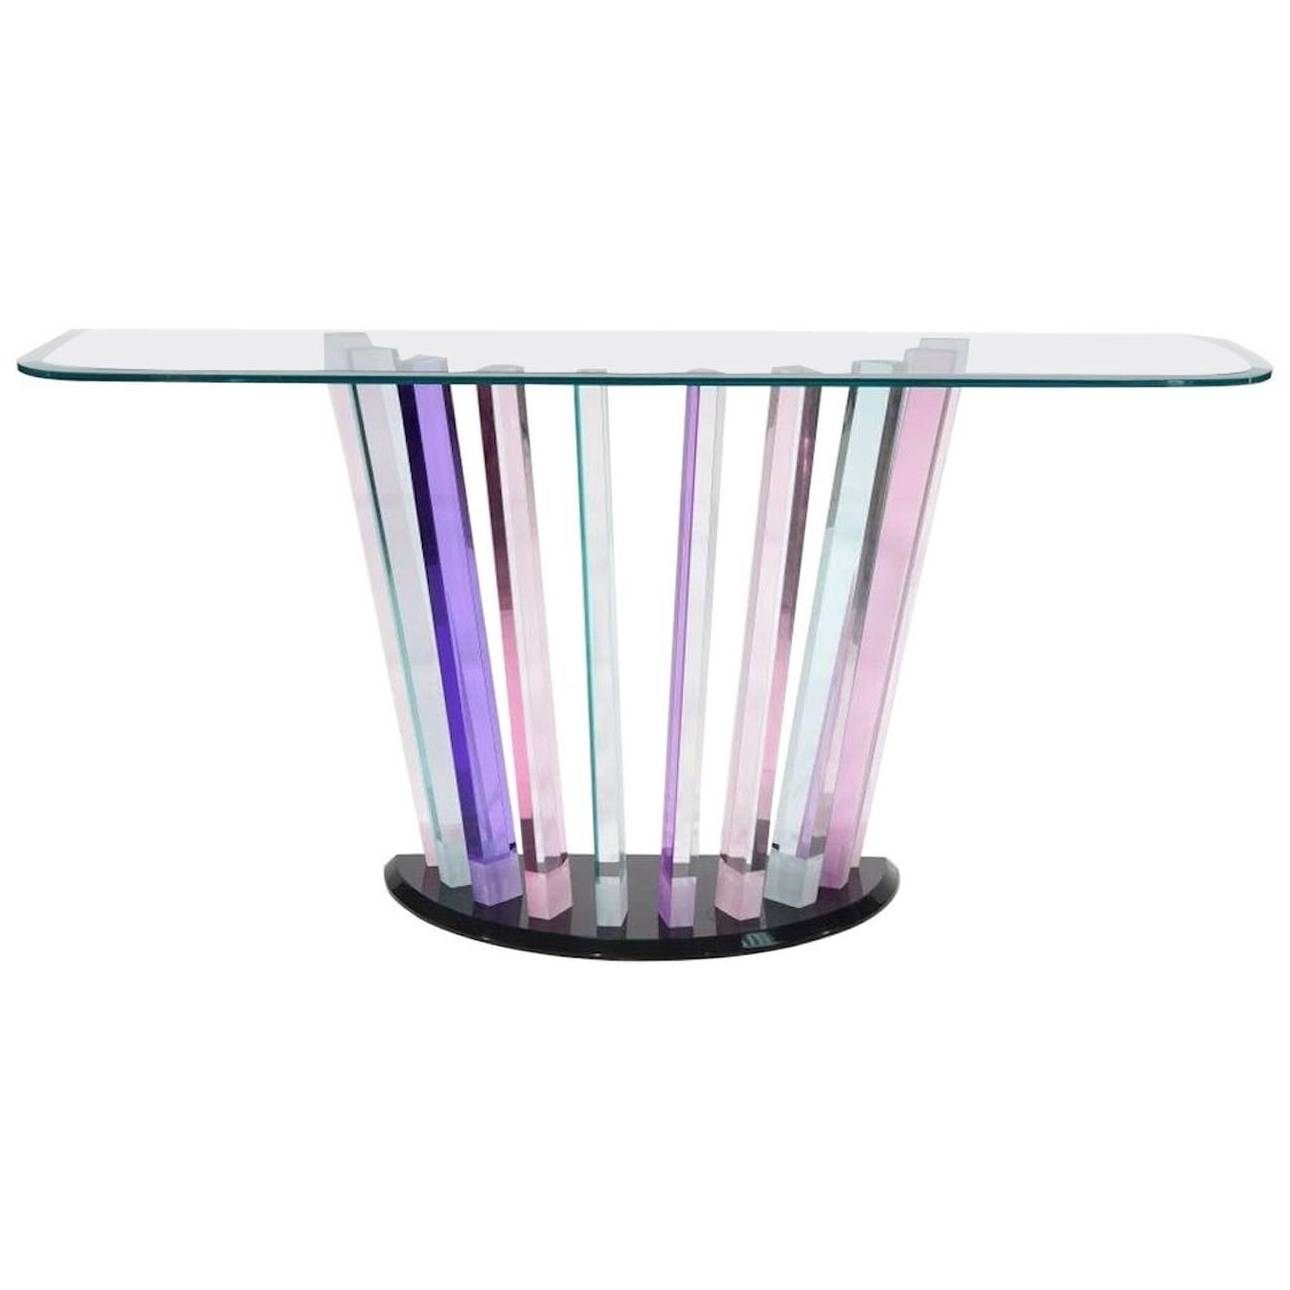 Vintage Swirl Glass Coffee Table – Cocinacentral.co in Swirl Glass Coffee Tables (Image 26 of 30)